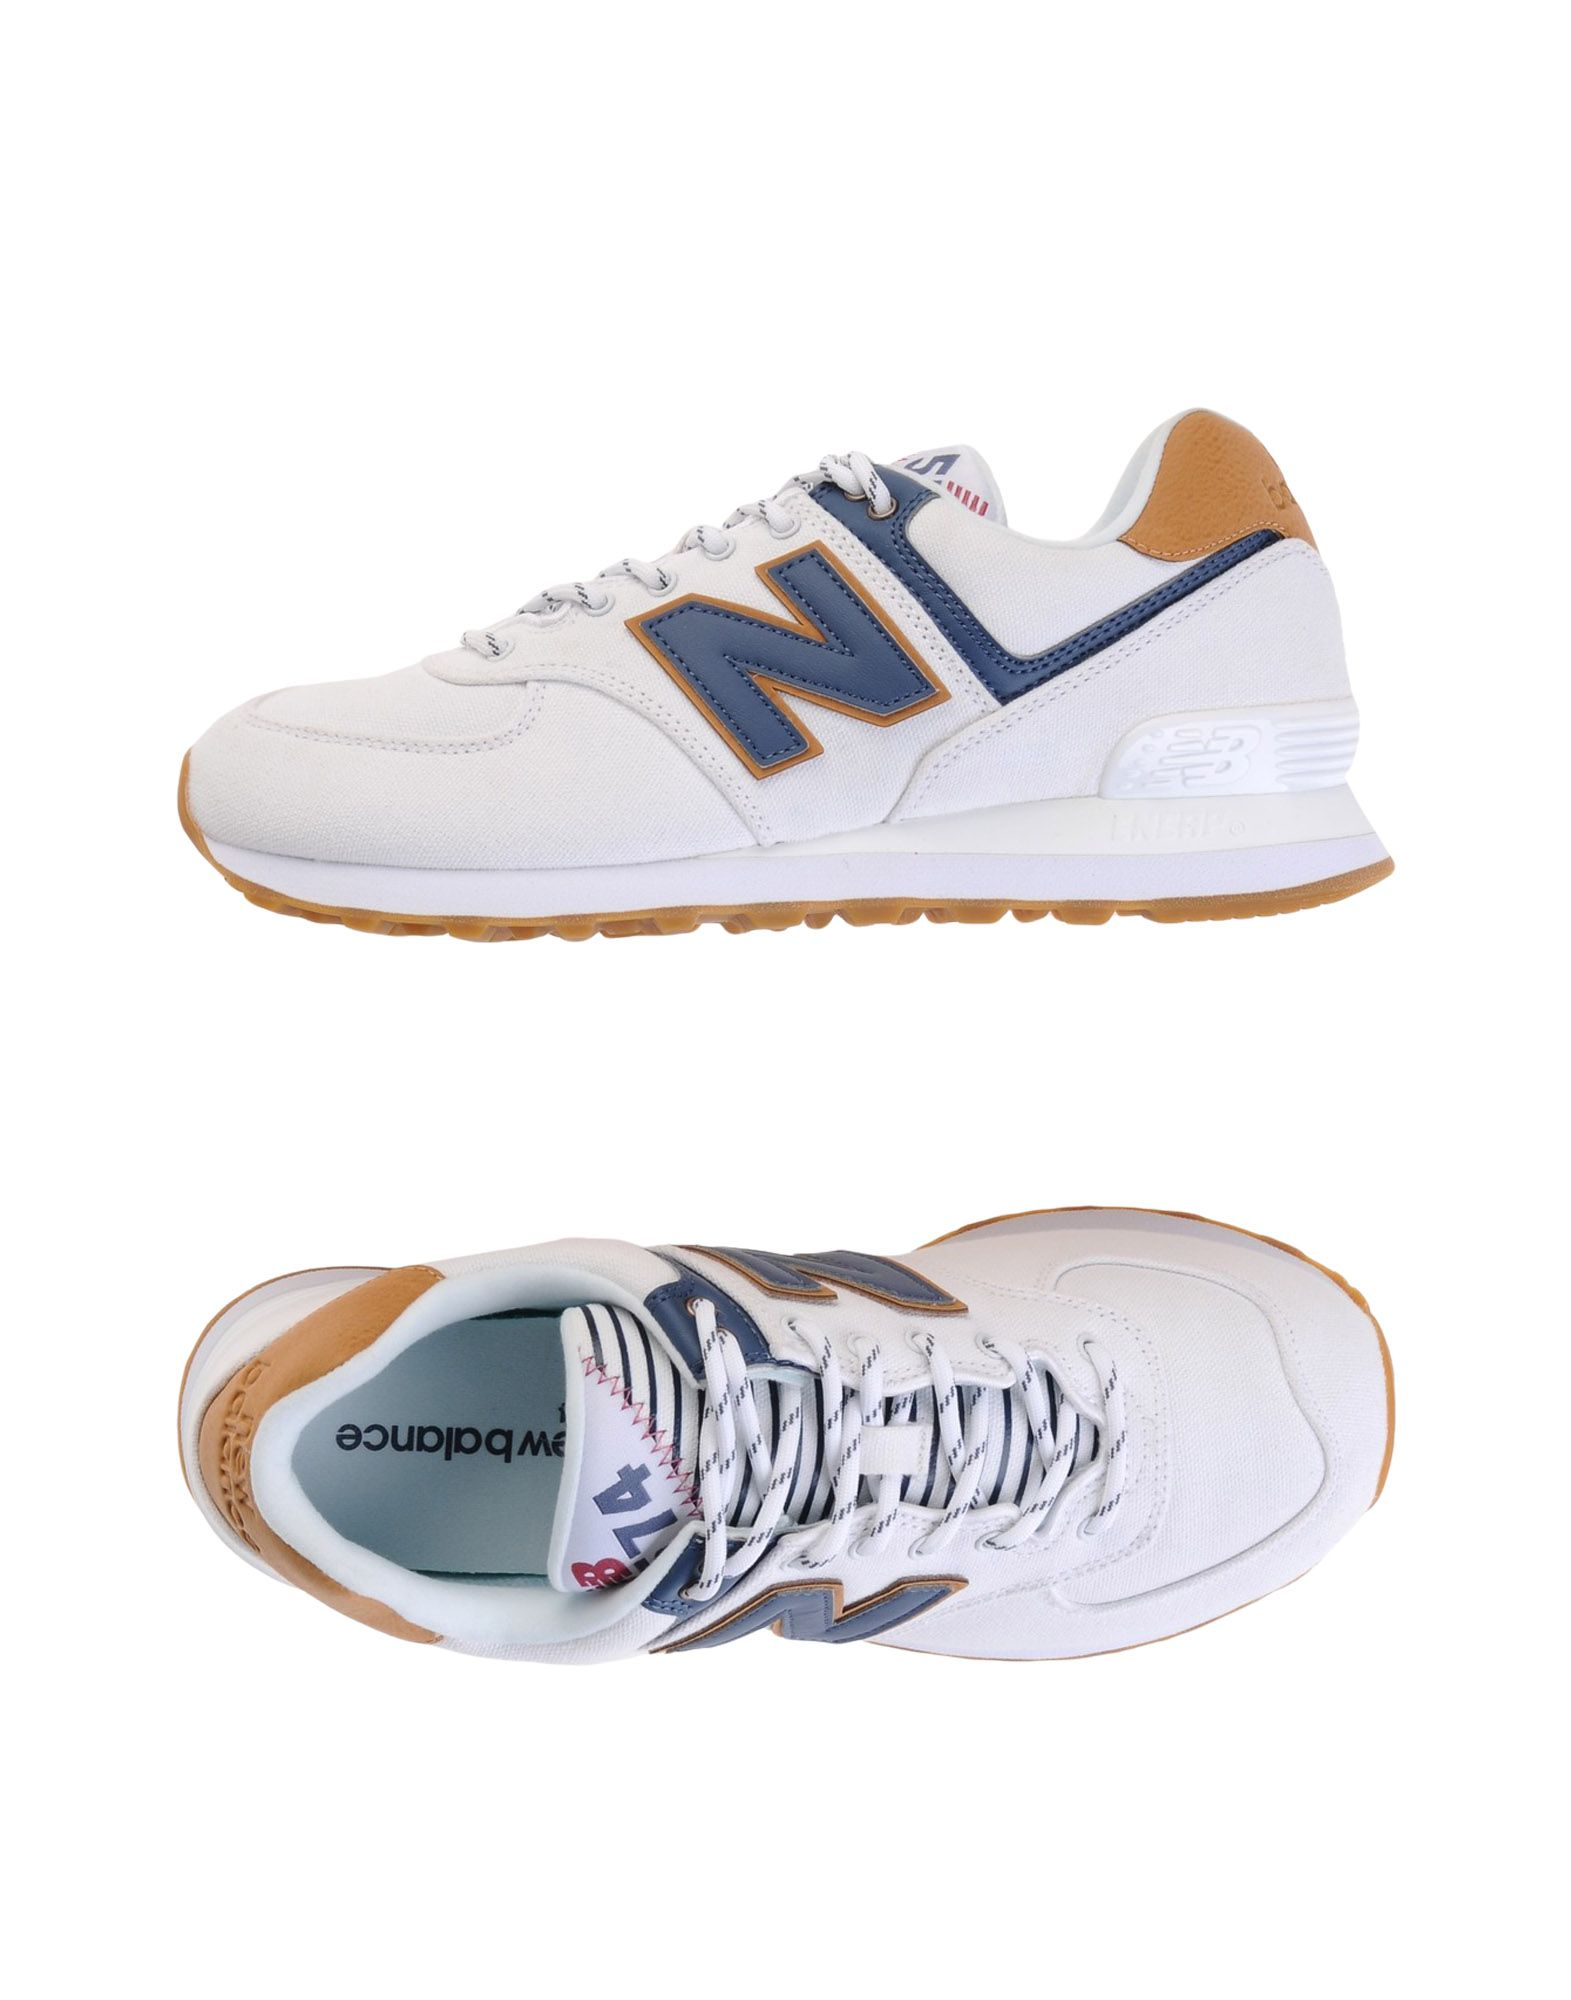 Sneakers New Balance 574 Yacht Club - Femme - Sneakers New Balance sur